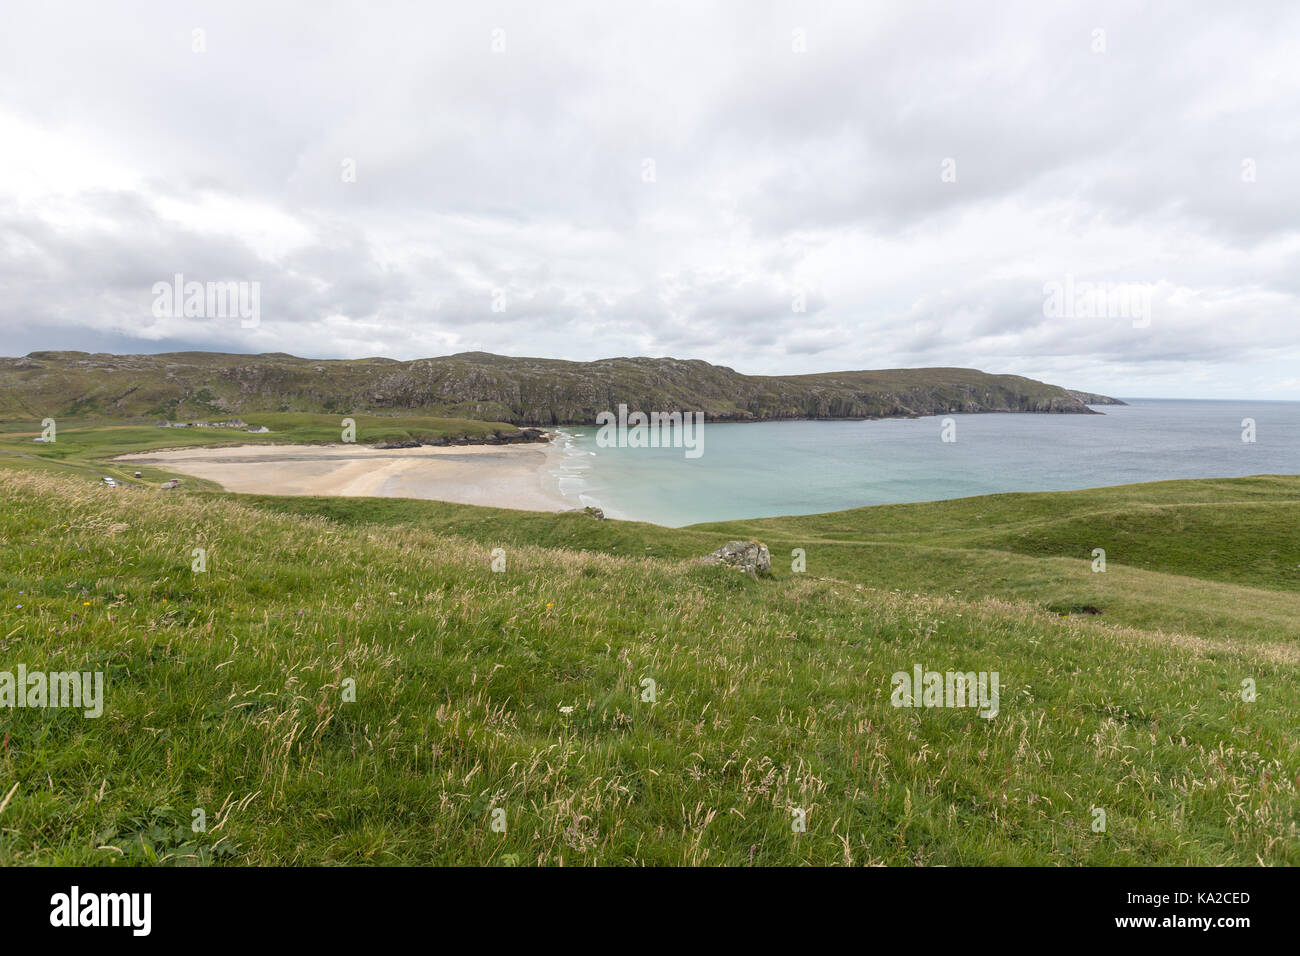 Cliff Beach, Cliff Beach, Isle of Lewis, Outer Hebrides, Scotland, UK - Stock Image